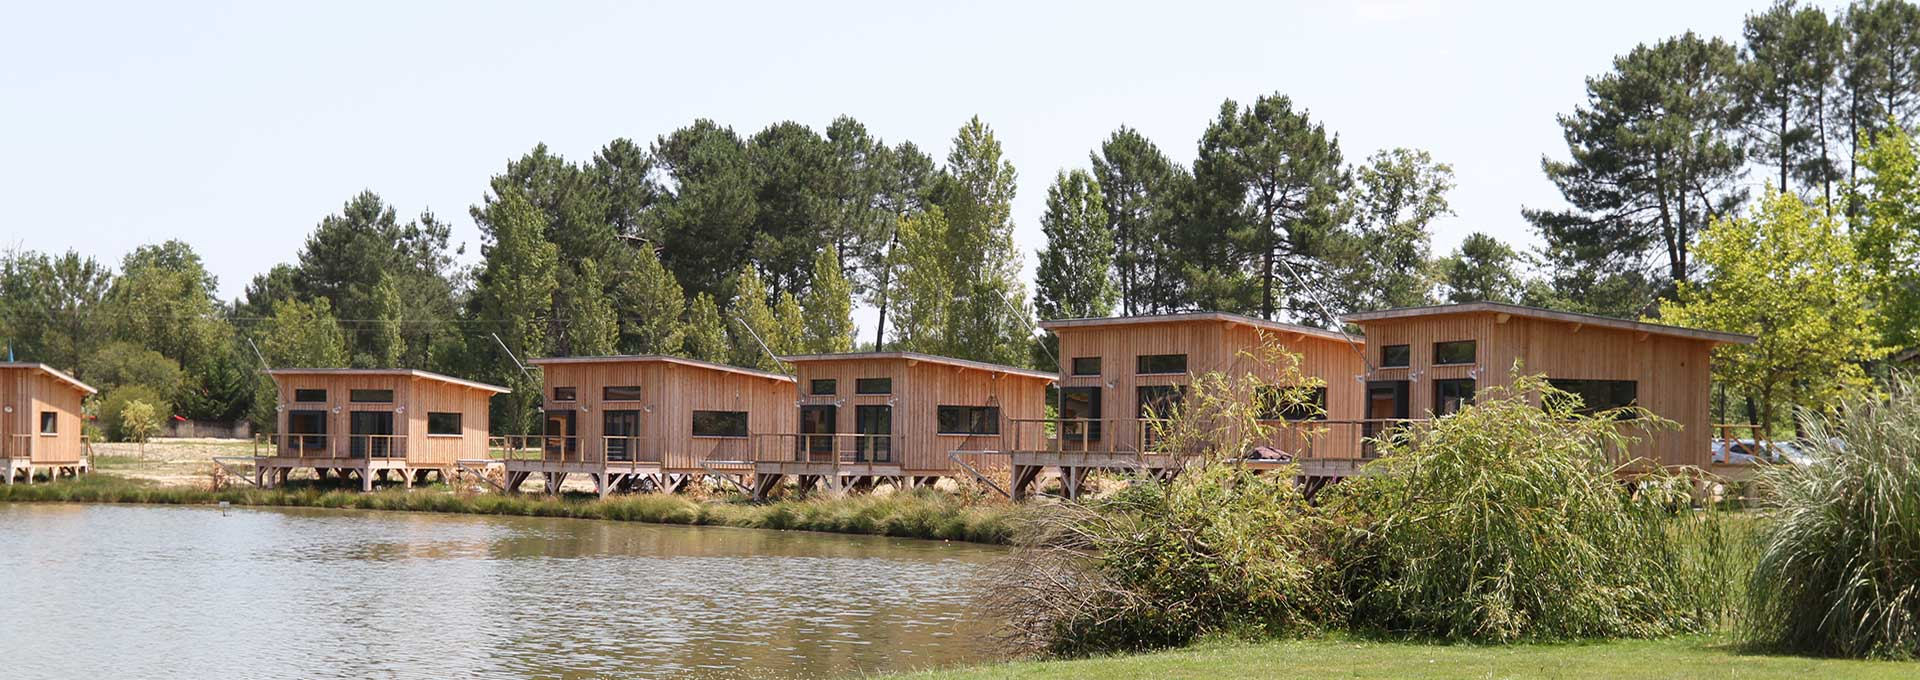 ecolodge golf bordeaux gironde 33